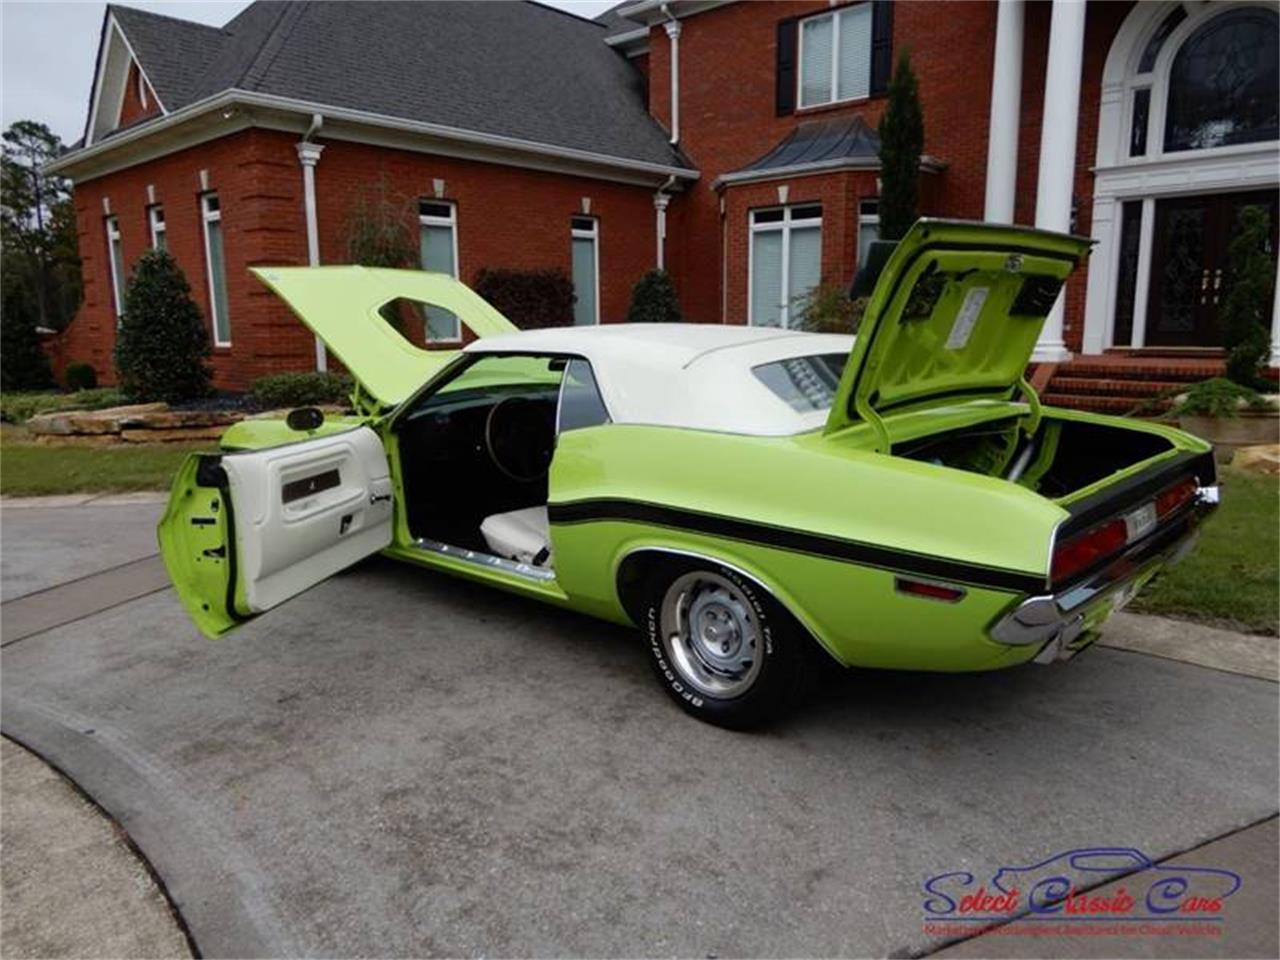 Large Picture of '70 Dodge Challenger located in Georgia - $125,000.00 - OW5E